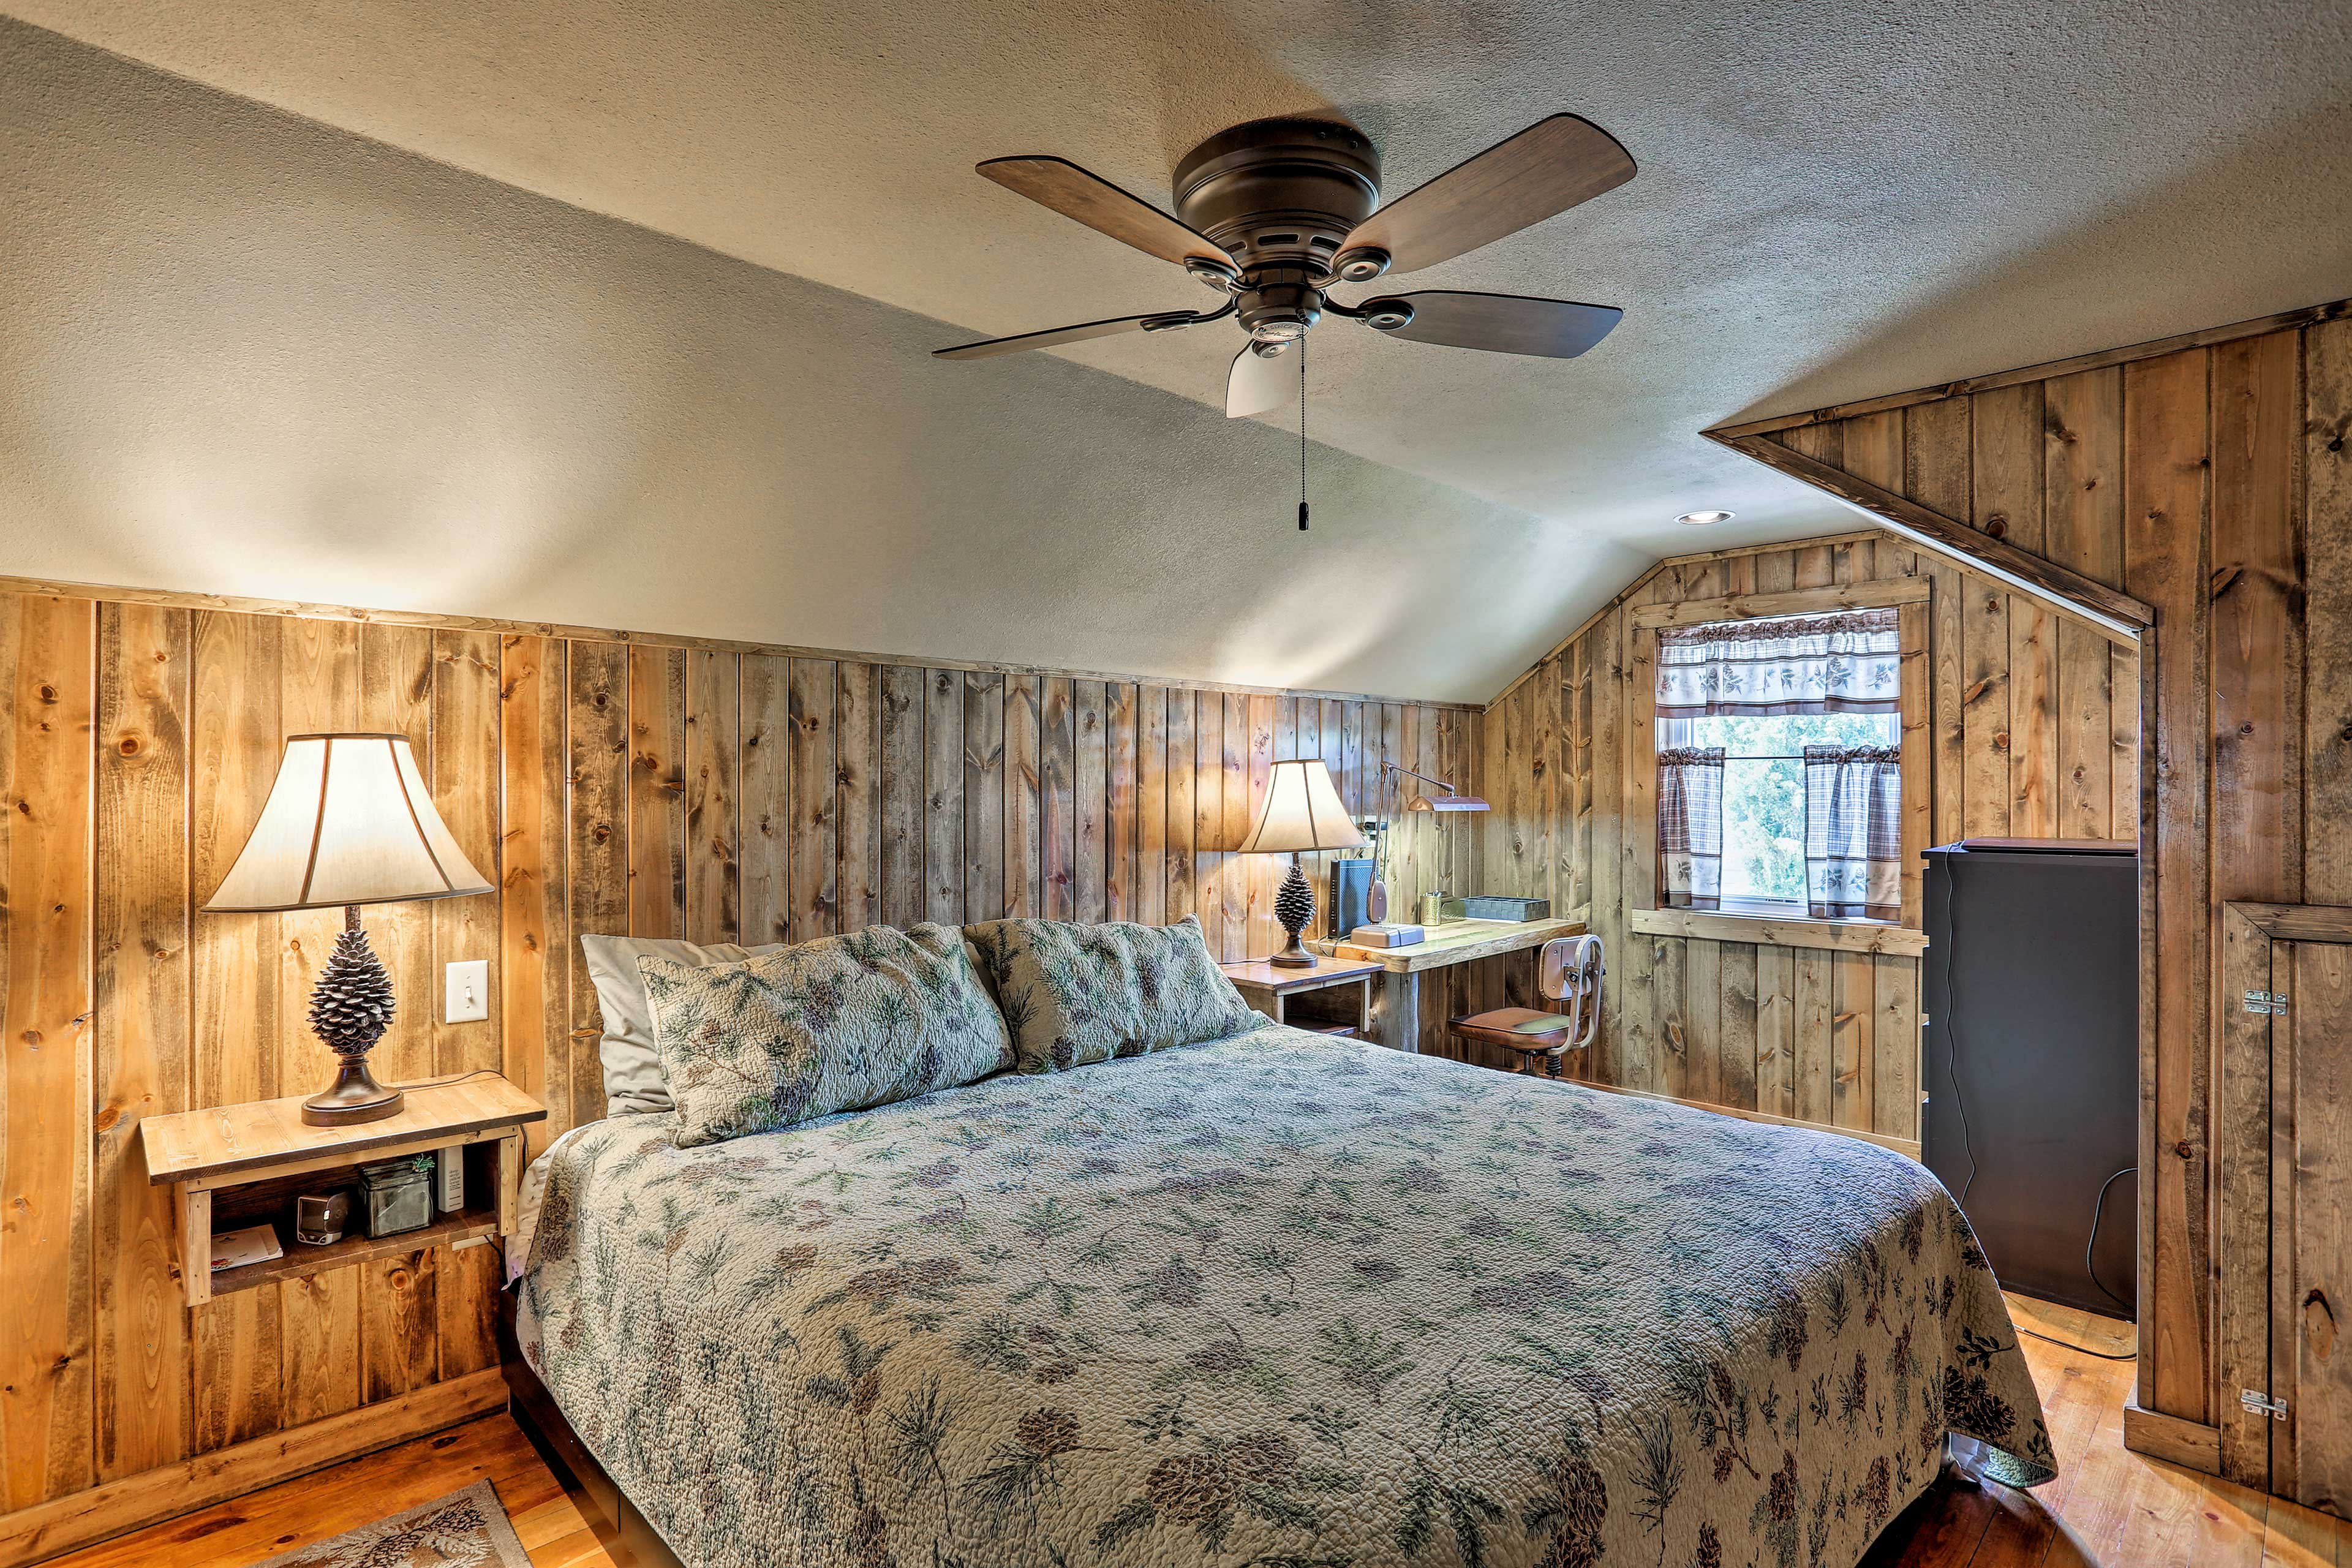 The master bedroom houses a king-sized bed.